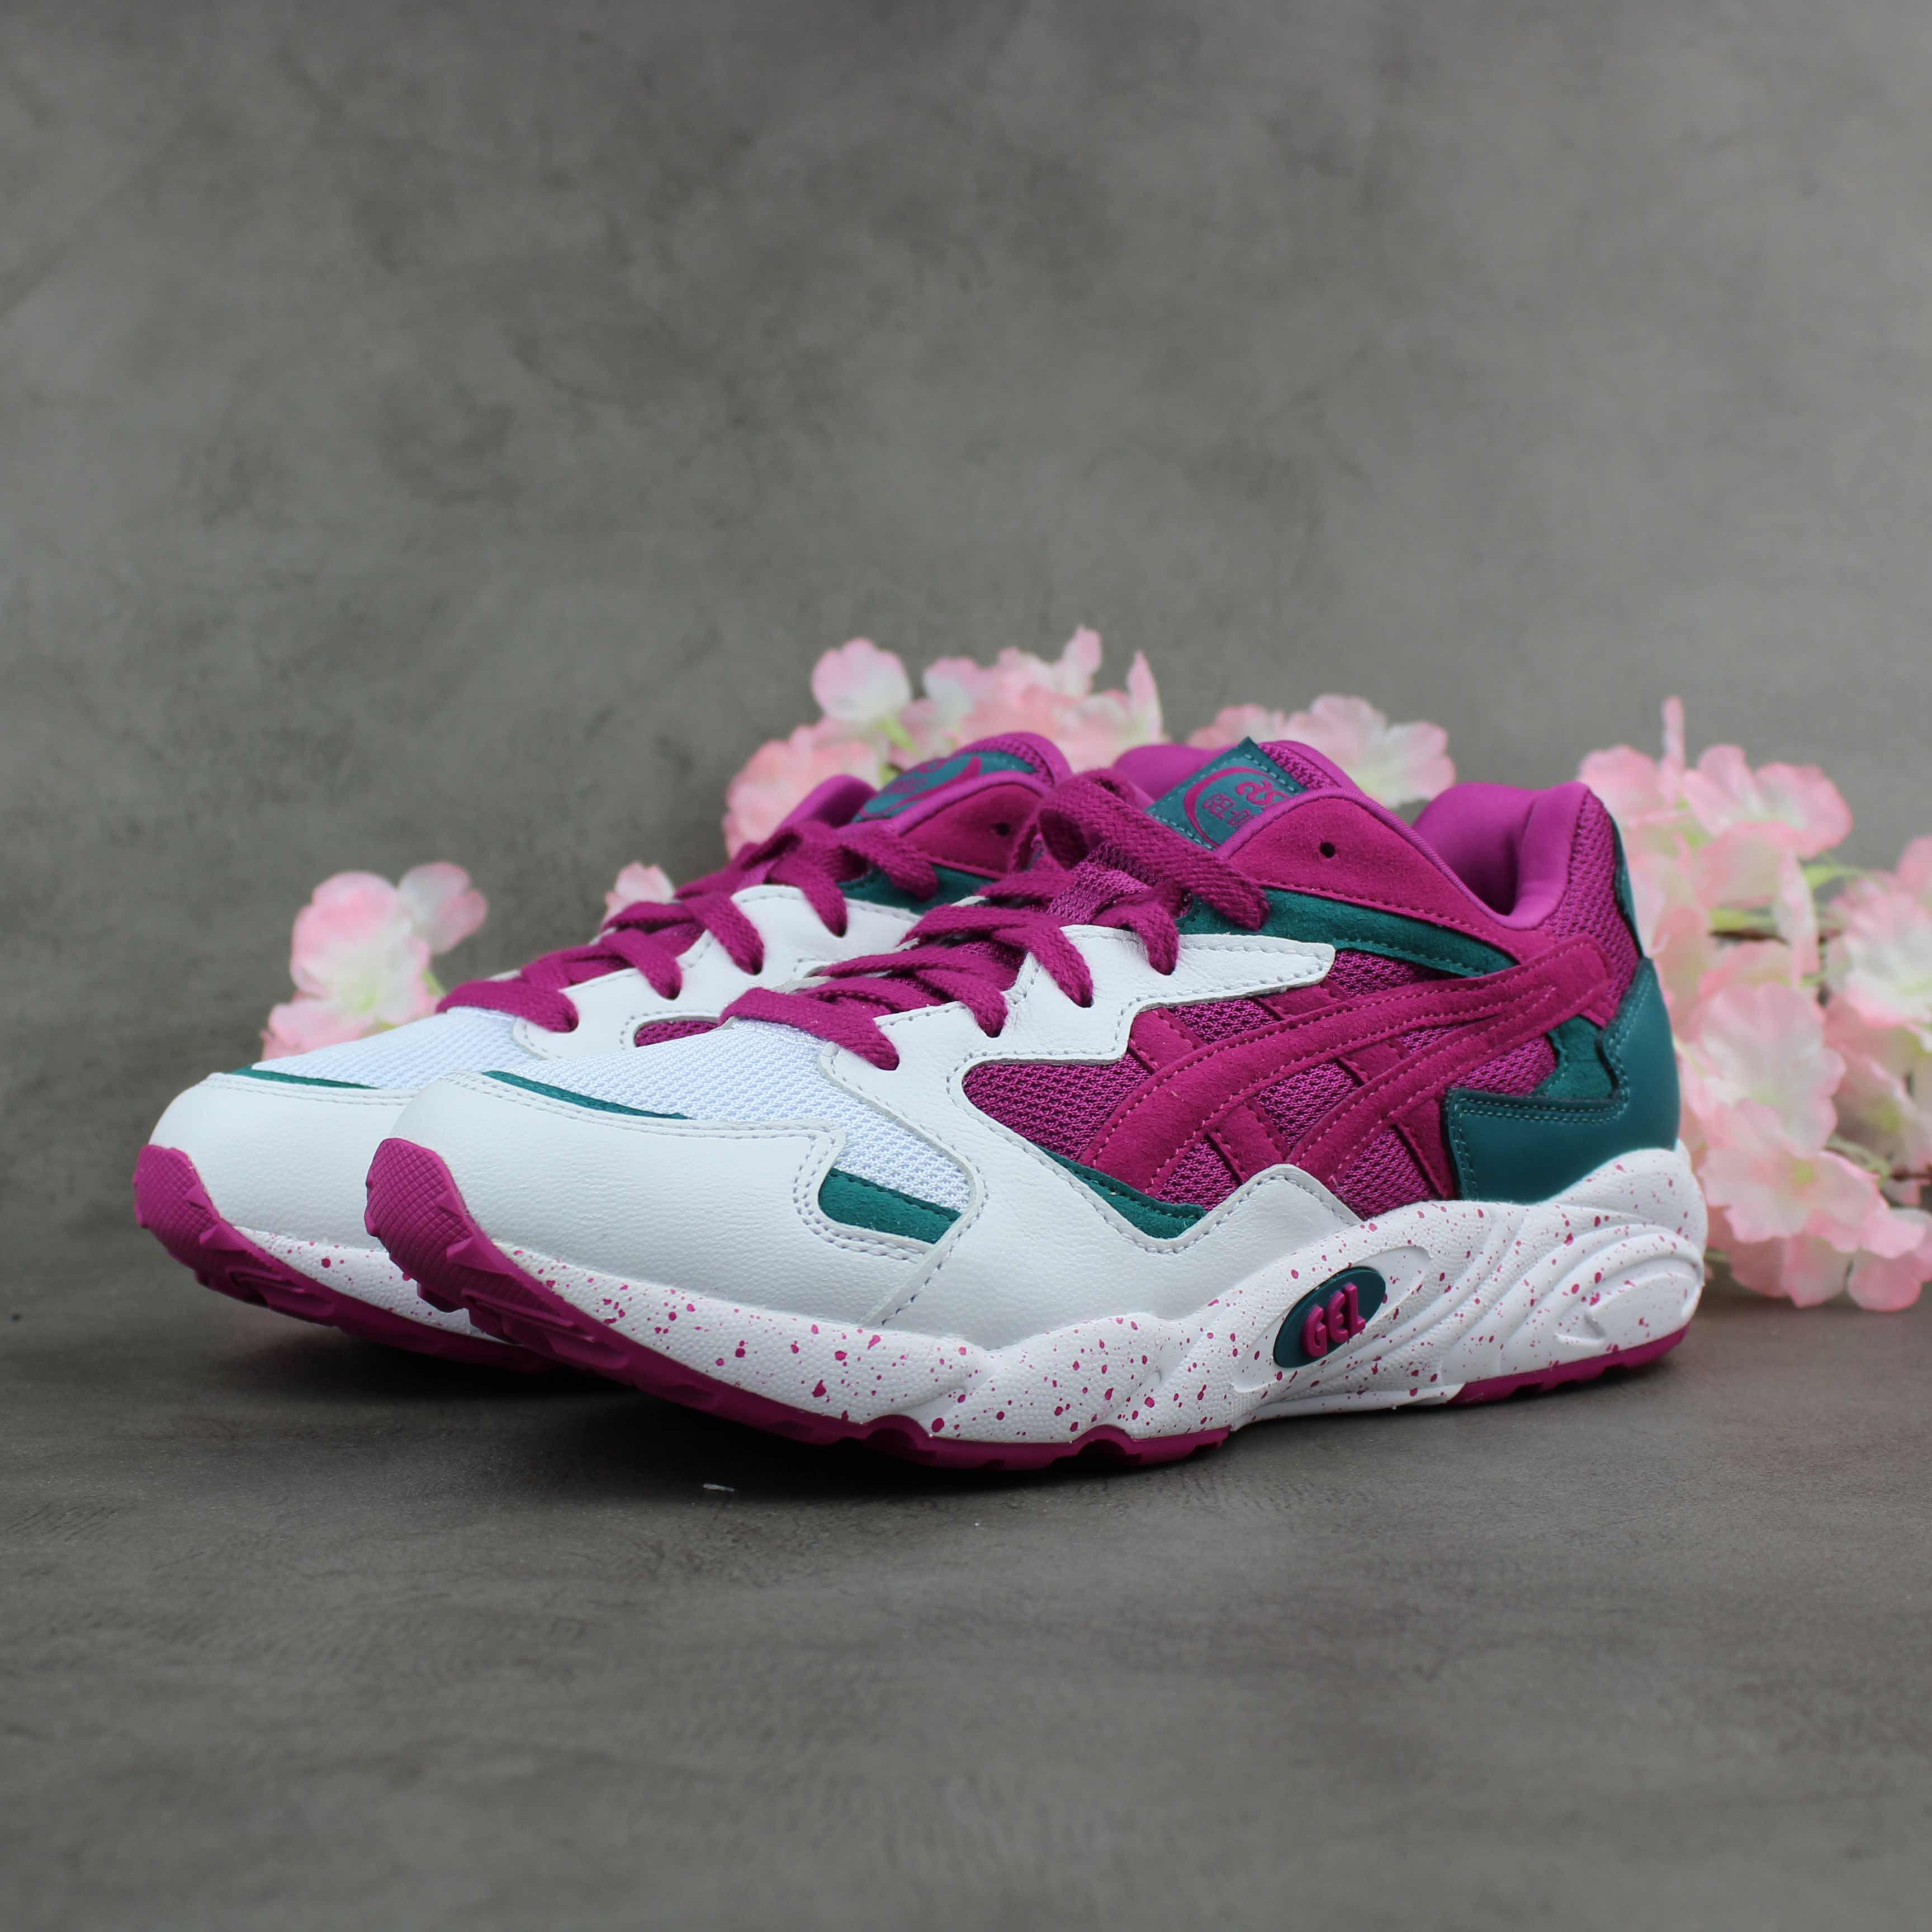 Asics Gel-Diablo Trainers In White H809L-3232 sale shop offer Cheapest for sale 2014 unisex online discount official dy1KTKE